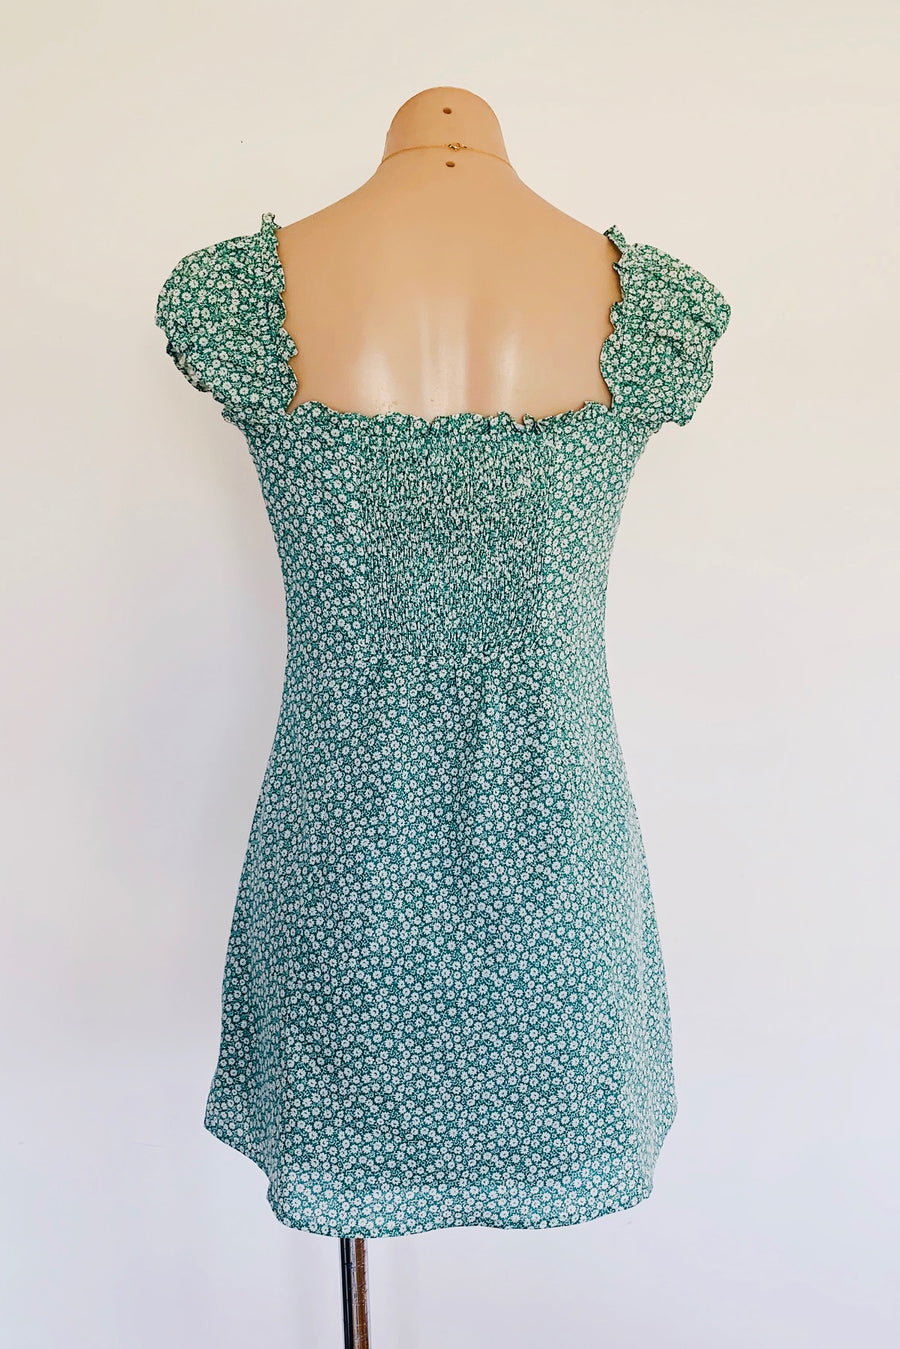 Melanie Dress for $75.00